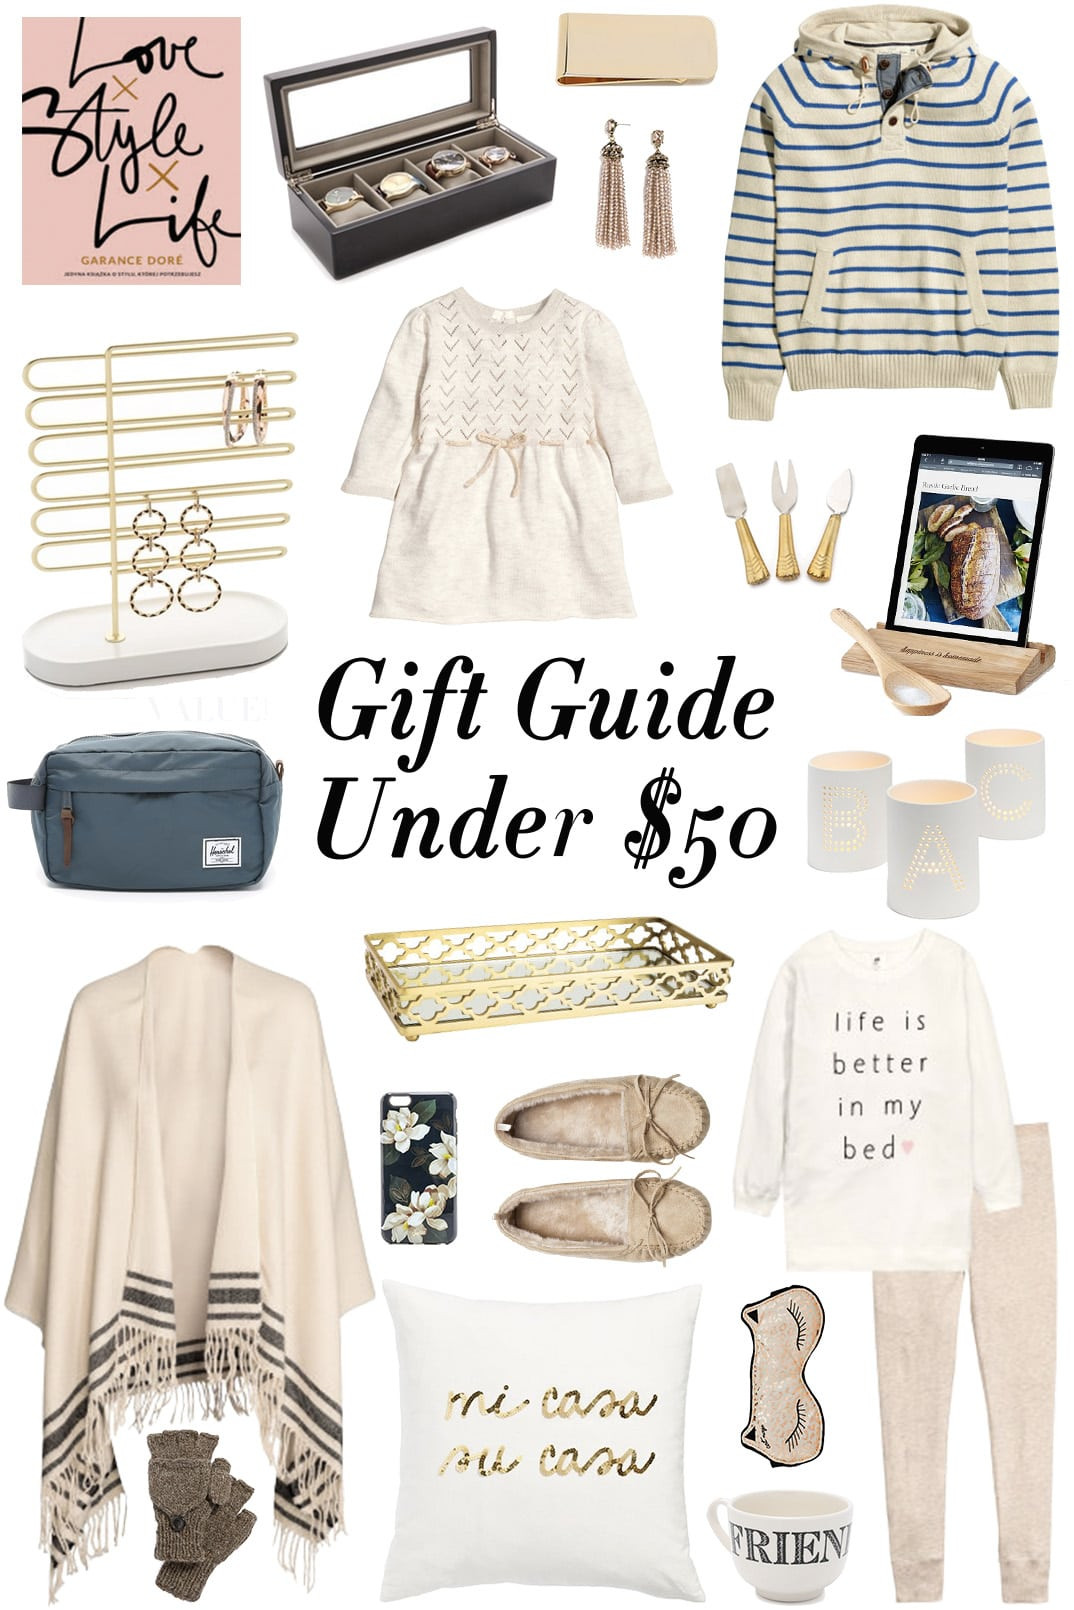 Best ideas about Gift Ideas Under 50 . Save or Pin Gift ideas under $50 Now.